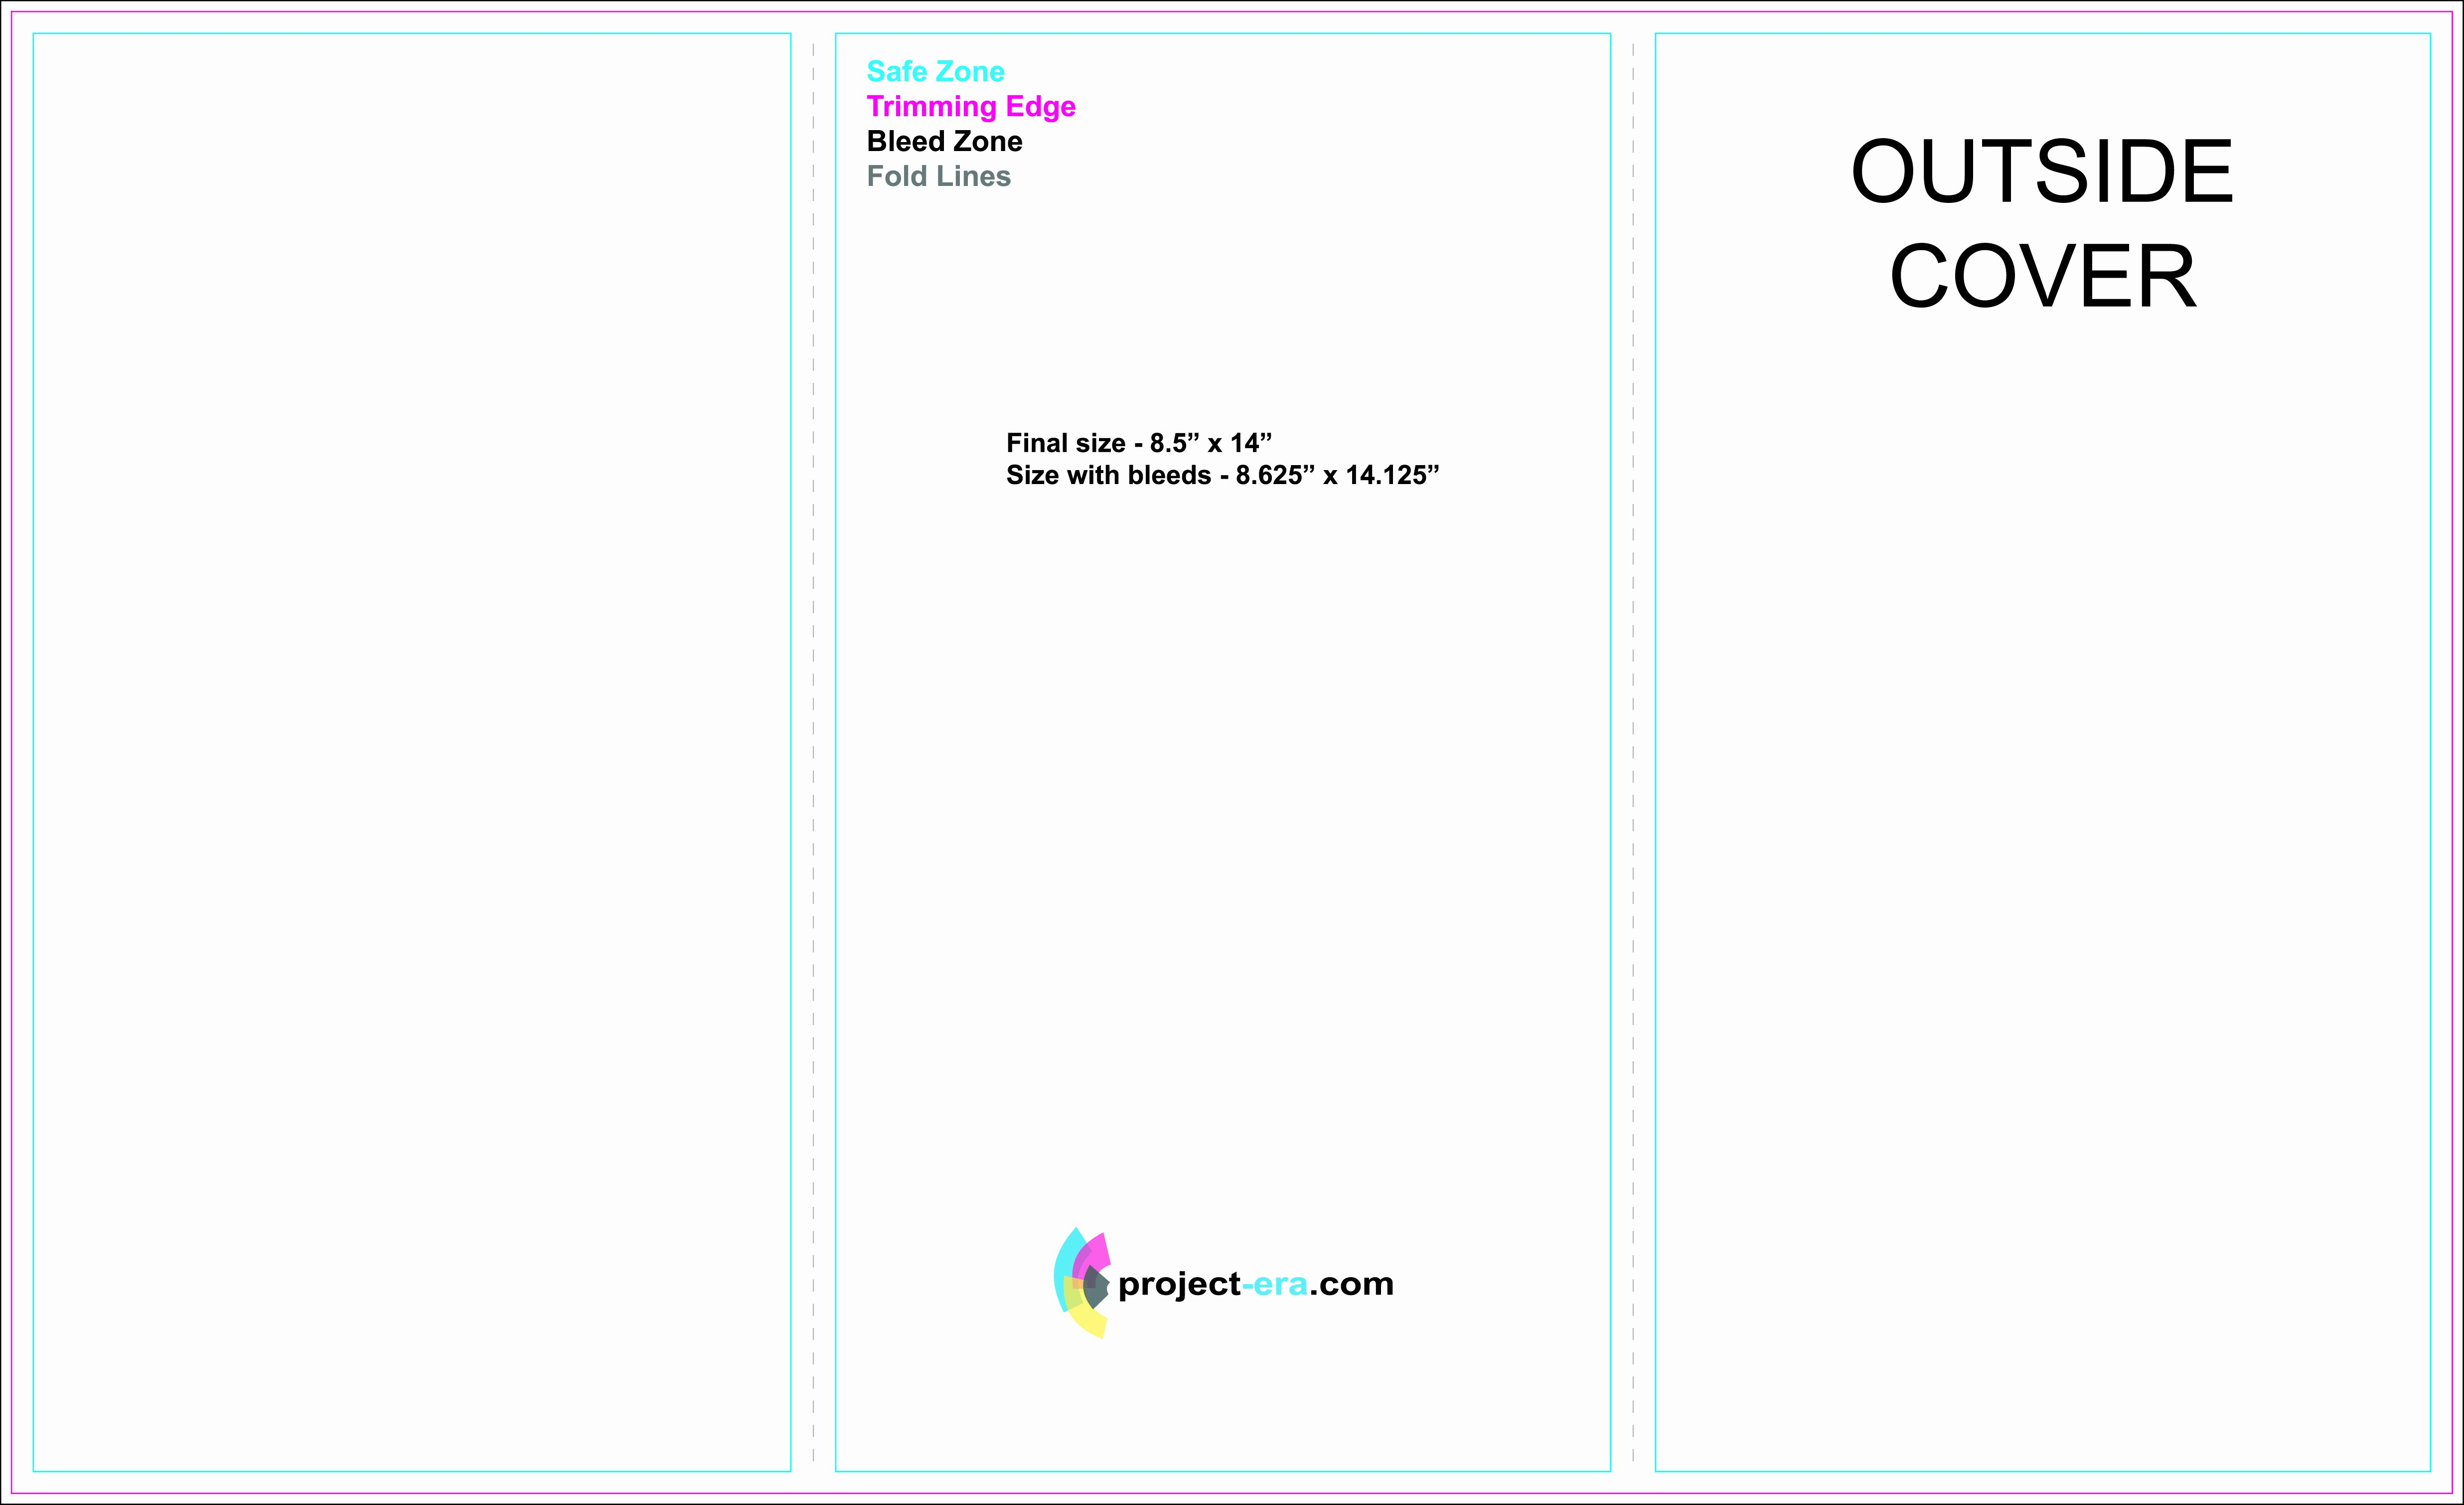 "Trifold Brochure Template Illustrator New Free Tri Fold Brochure Templates Based On 8 5"" X 14"" Paper"